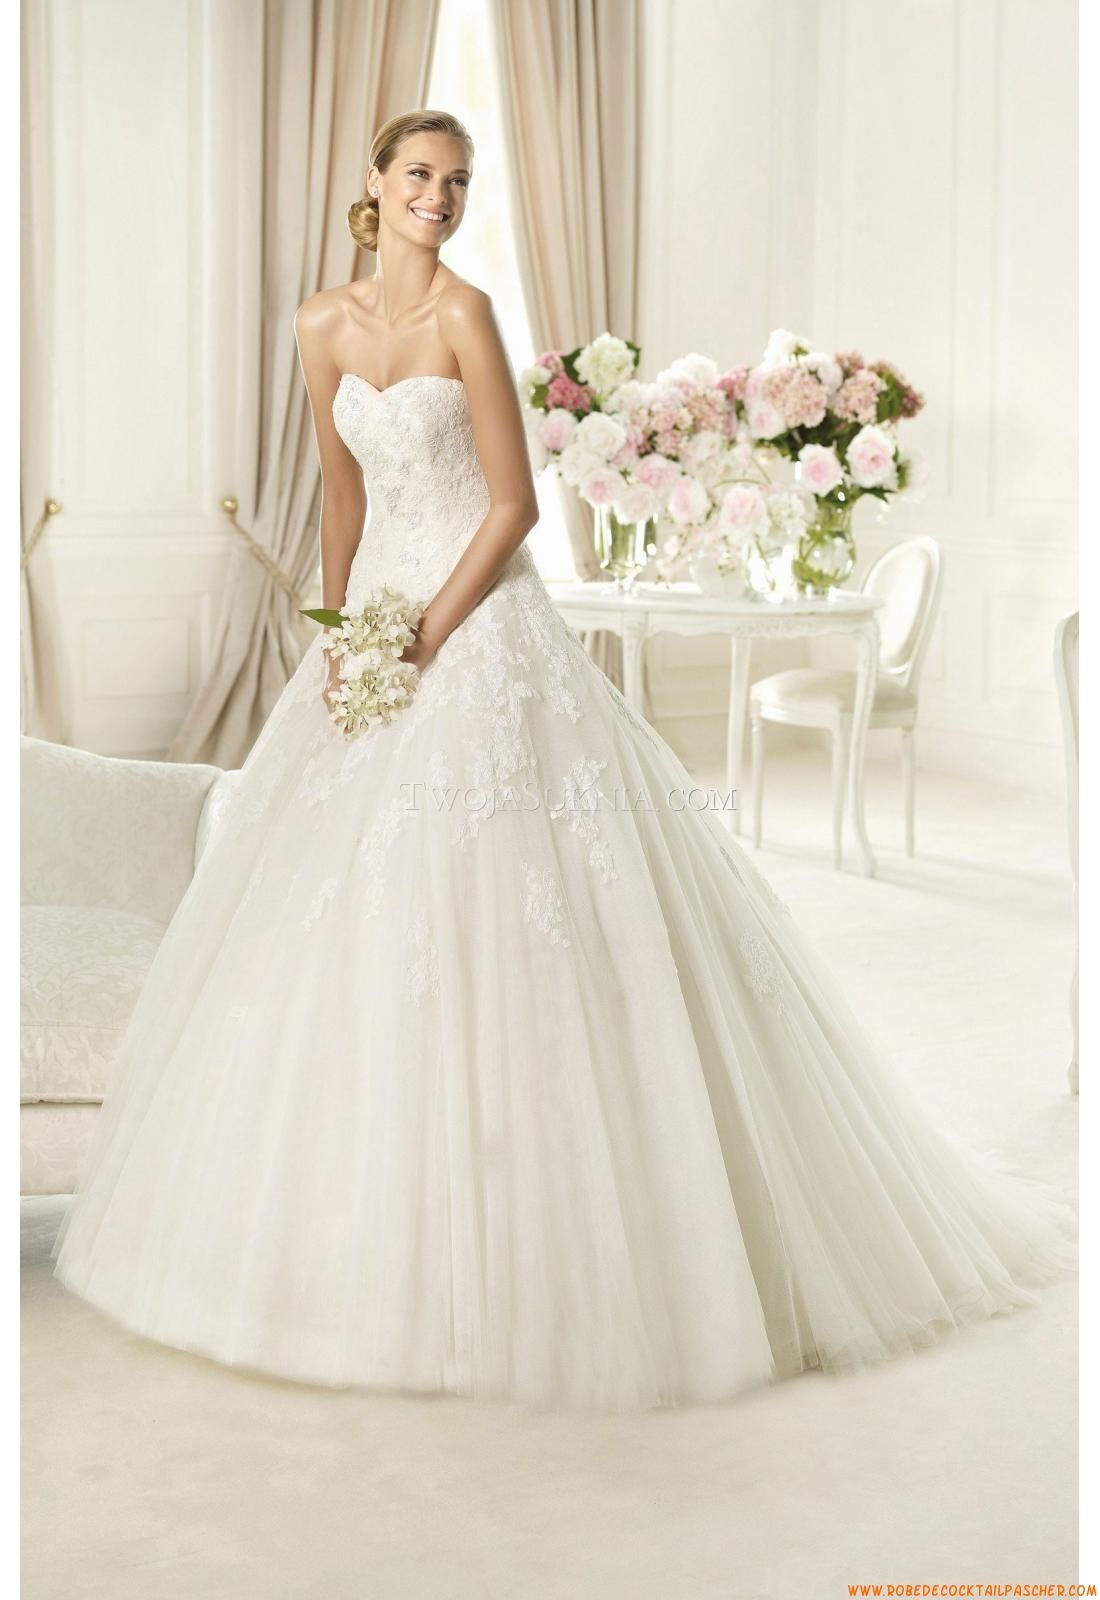 Cheap Vestidos De Novia Buy Quality Gown Wedding Directly From China Ball Dresses Suppliers V Neck Lace Appliques Royal Train Gowns